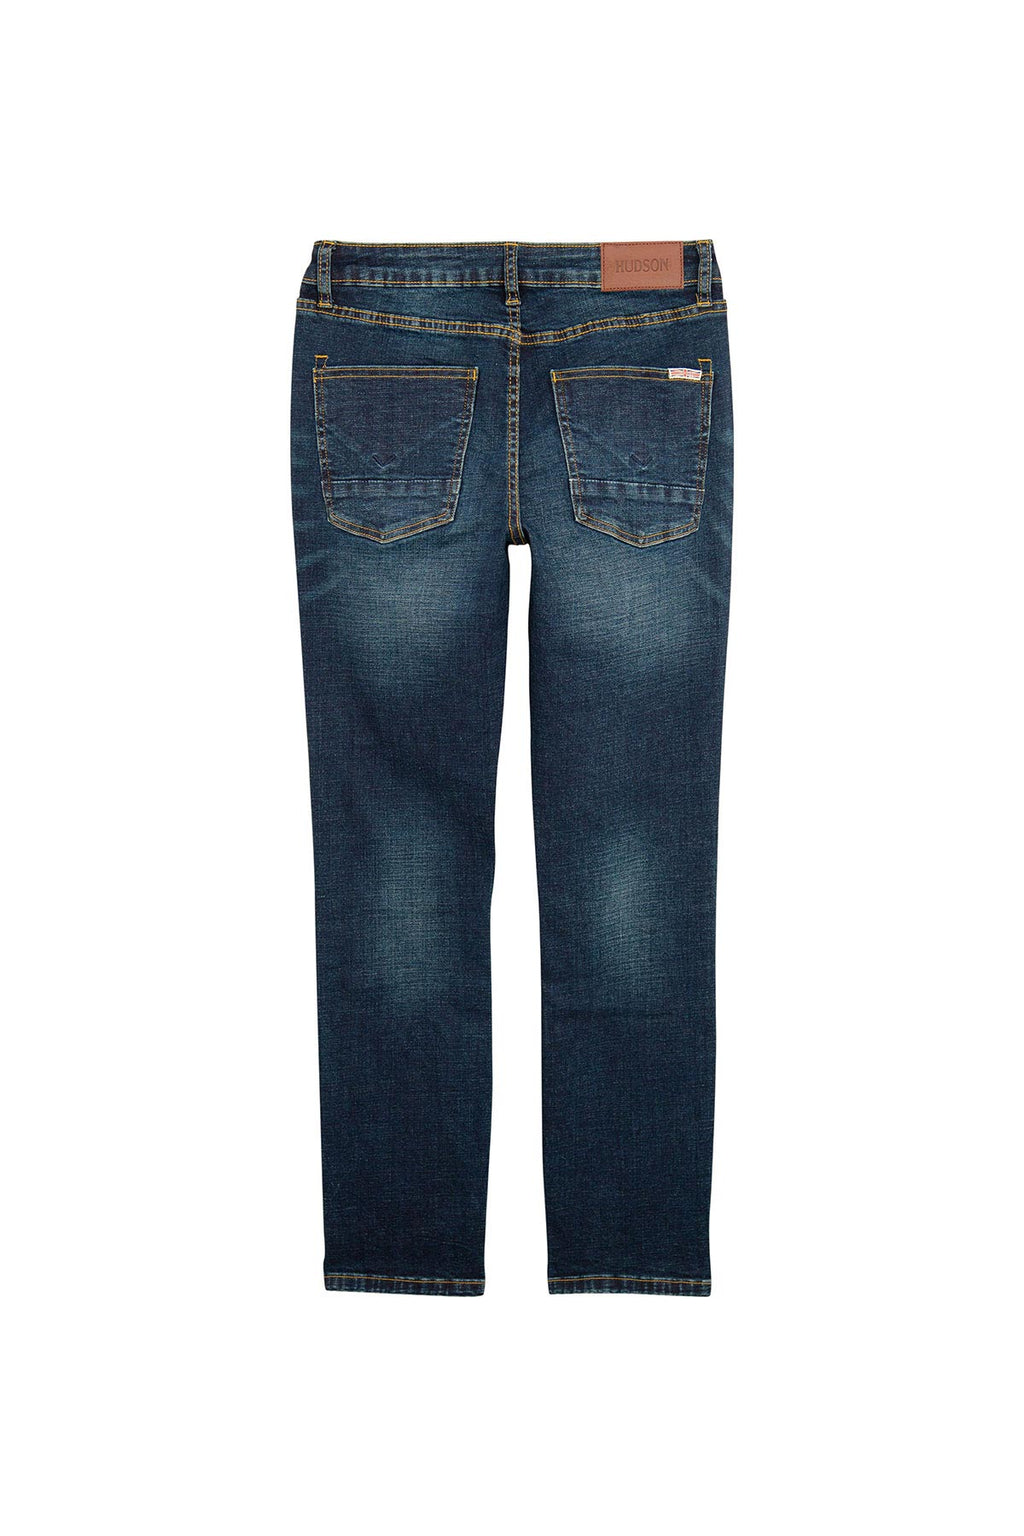 BOYS JAGGER SLIM STRAIGHT JEAN, SIZES 8-20 - BLUE - Image 2